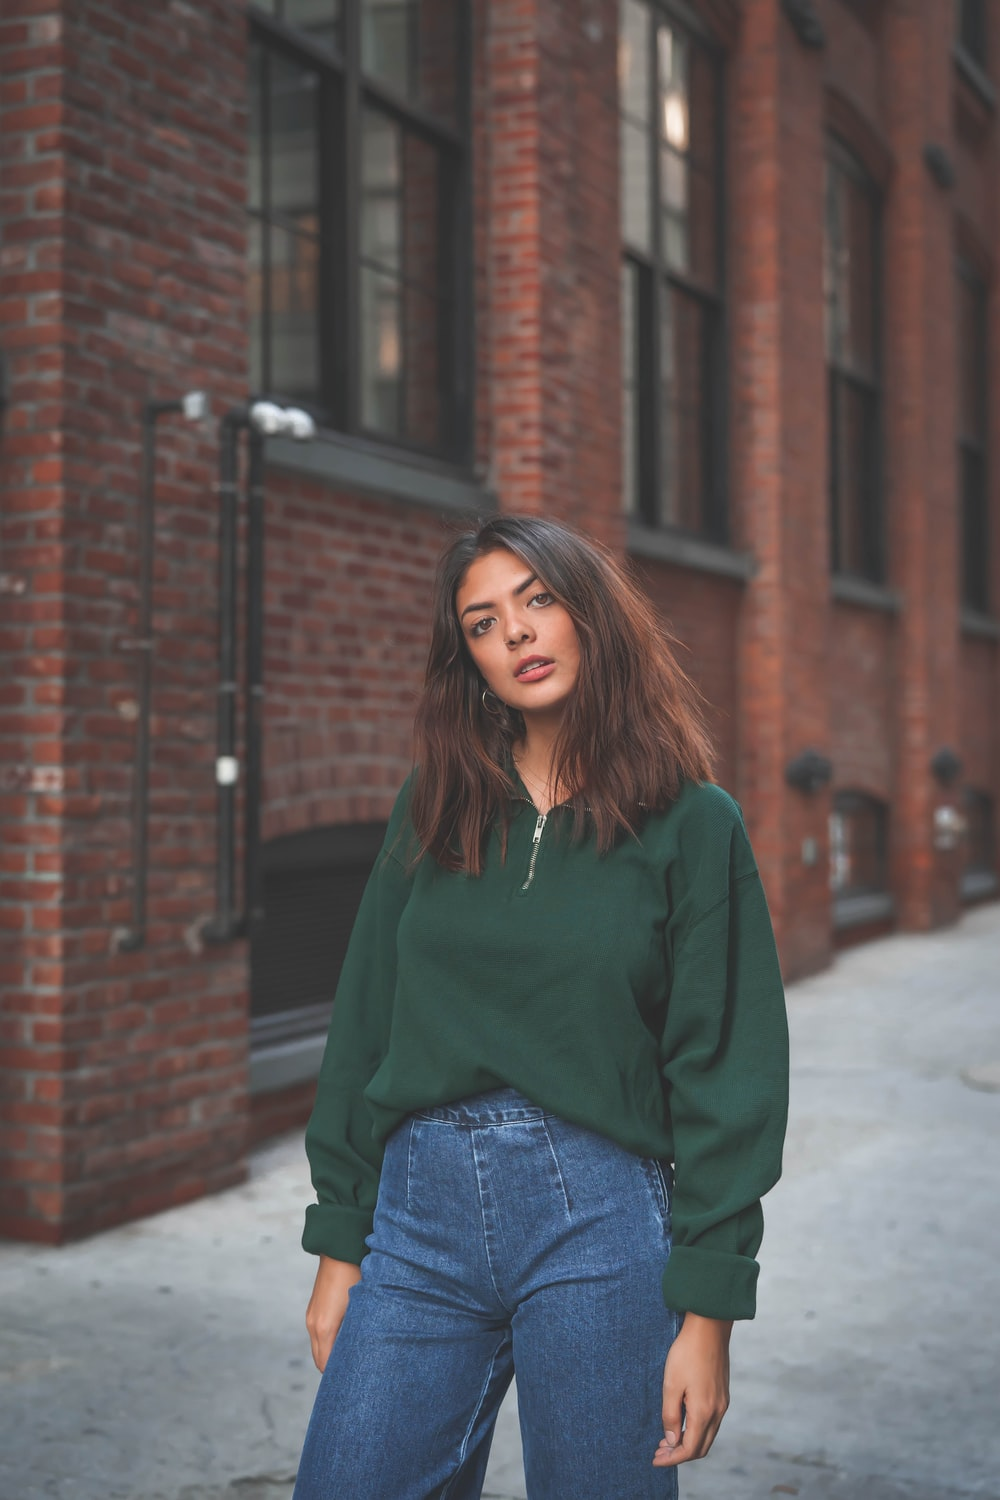 woman in green sweater and blue pants by buildingg